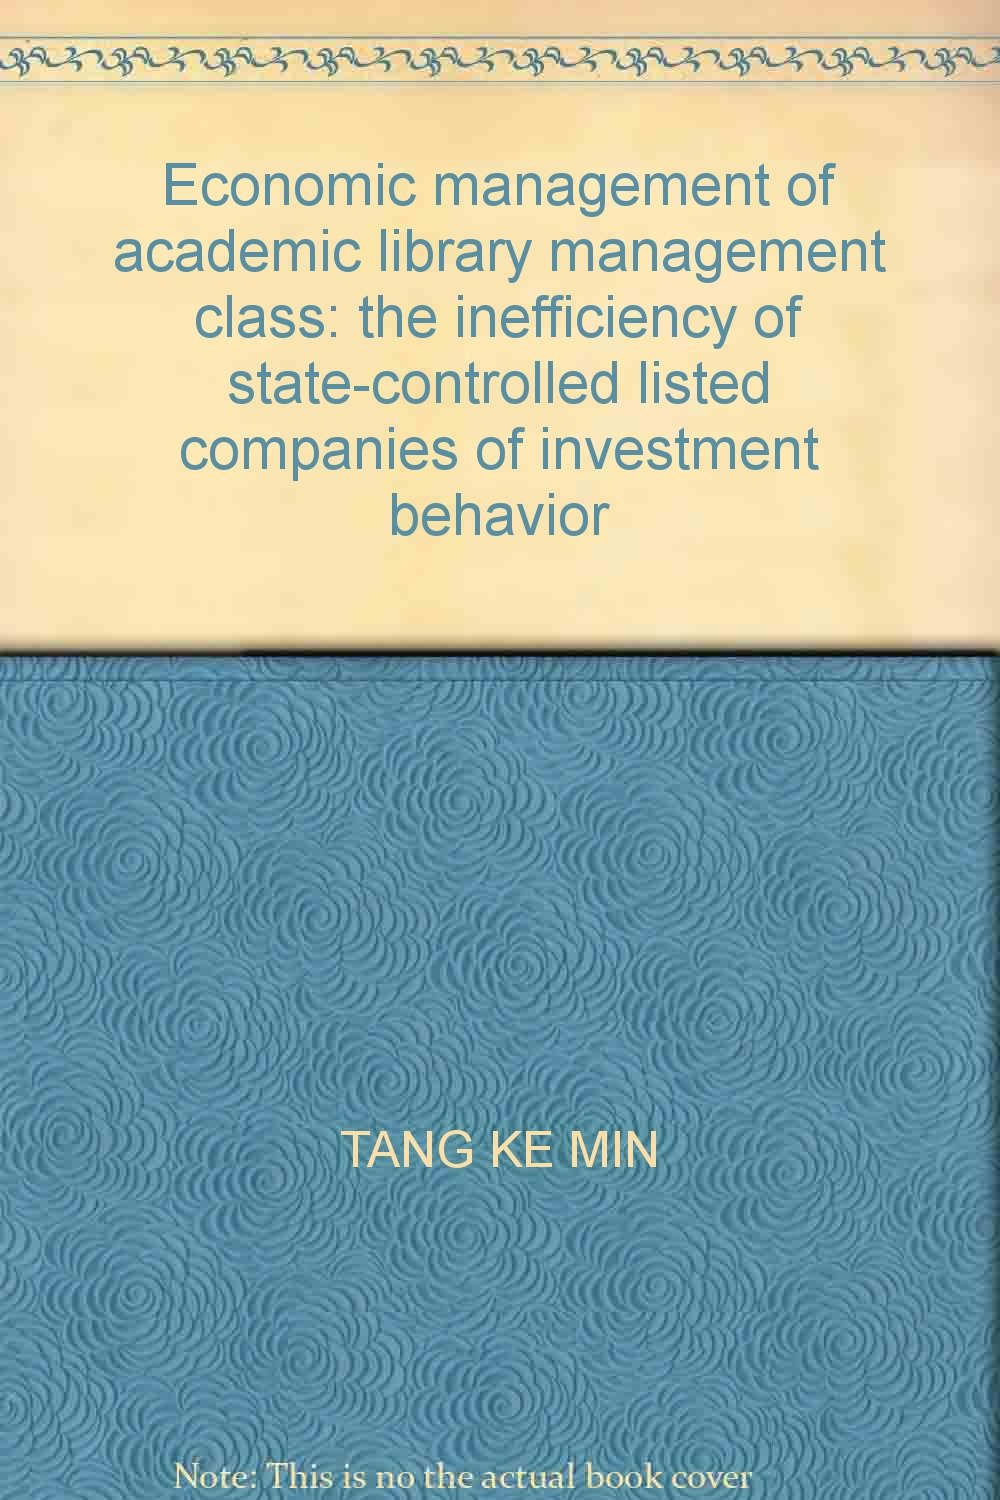 Download Economic management of academic library management class: the inefficiency of state-controlled listed companies of investment behavior PDF